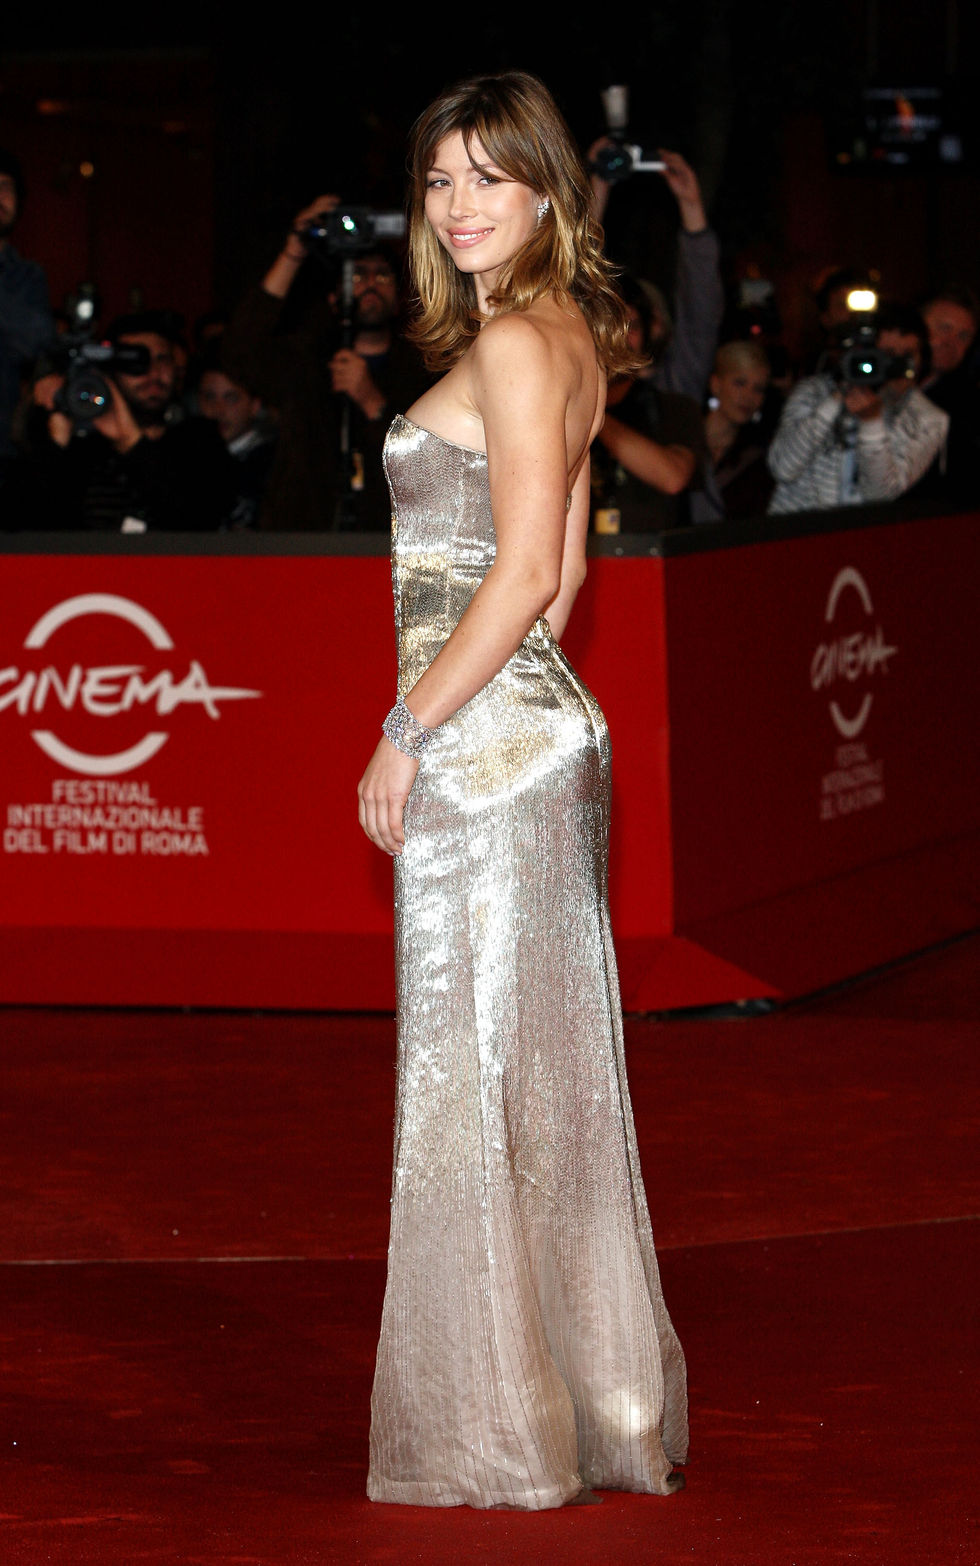 jessica-biel-easy-virtue-premiere-in-rome-13